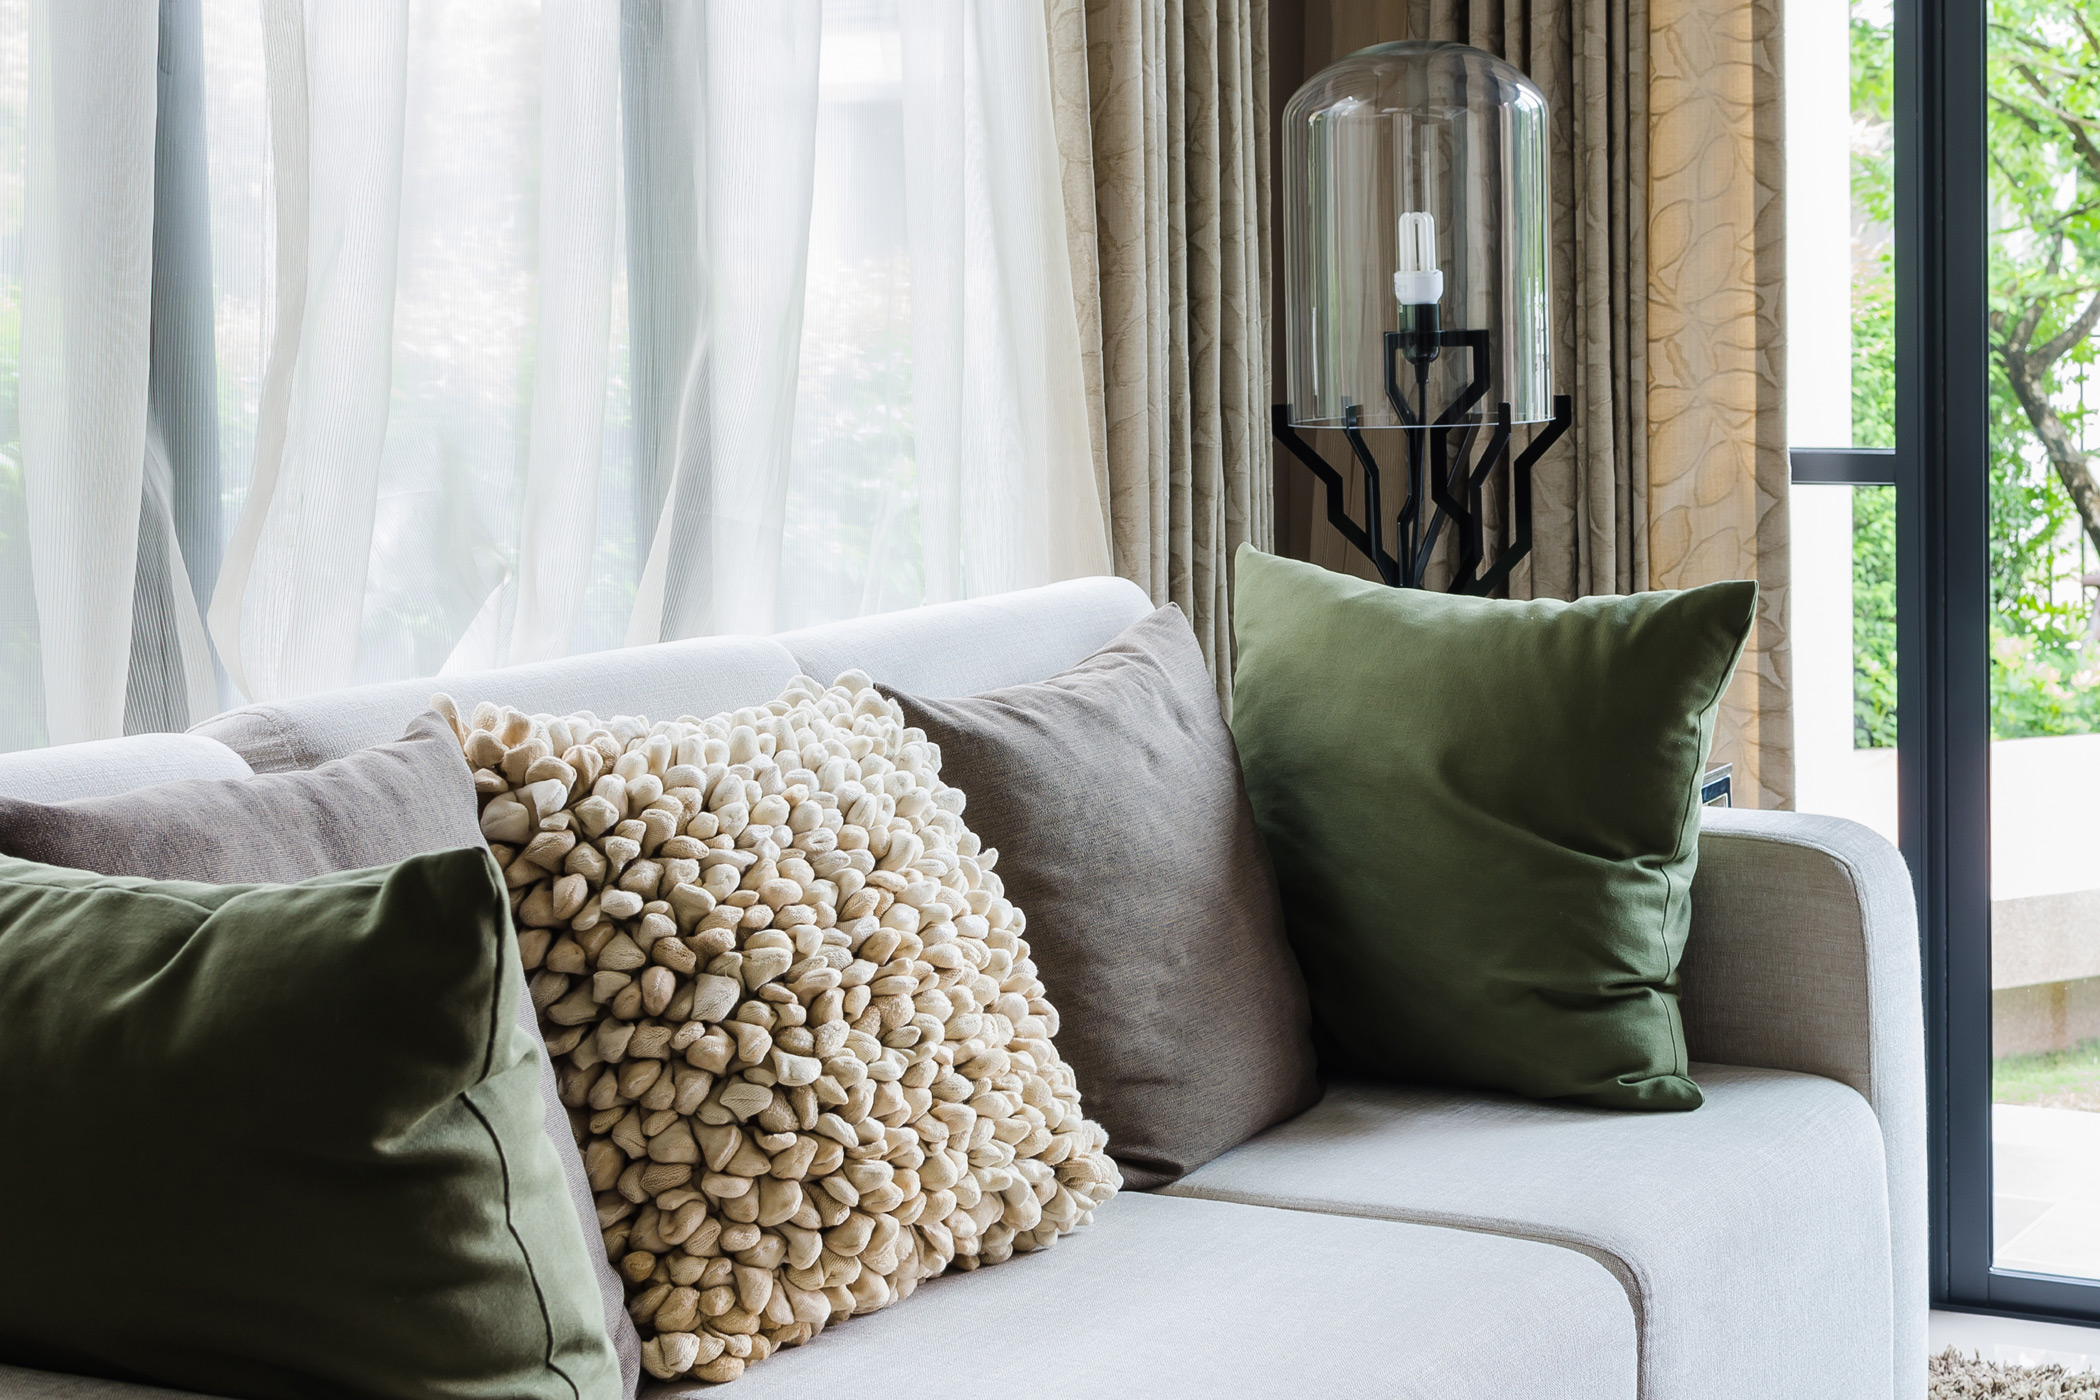 a couch covered in throw pillows in front of a window with soft and breezy curtains